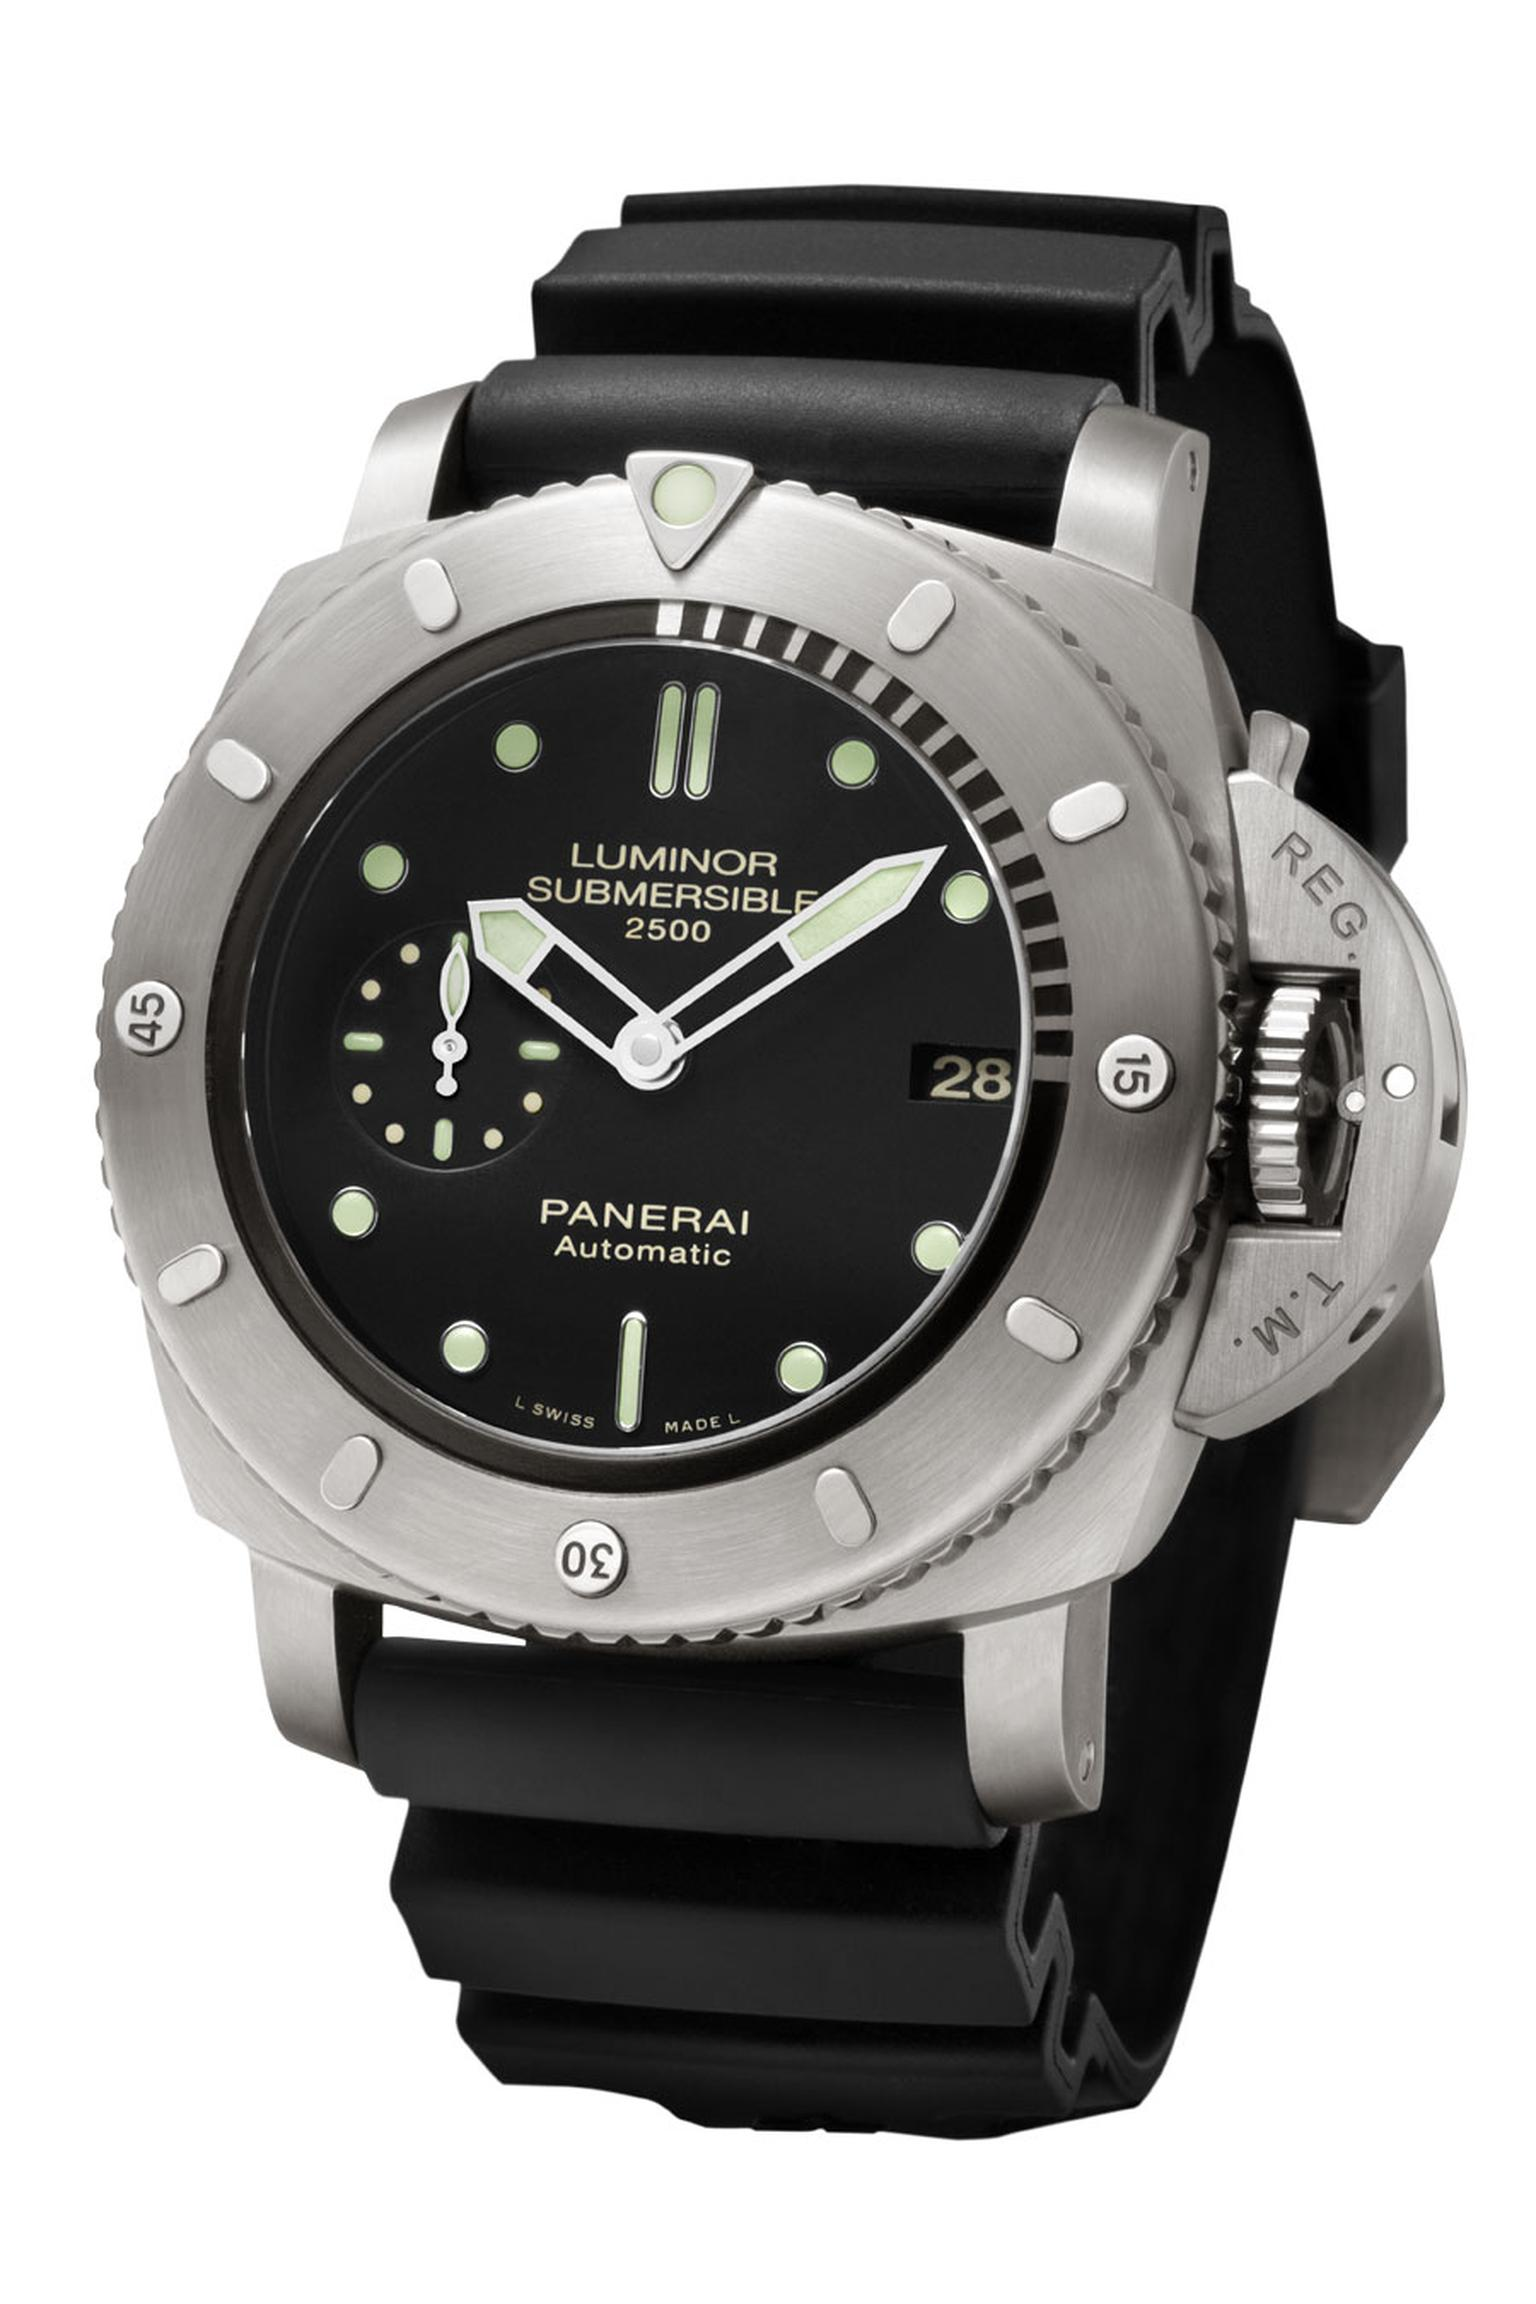 Officine-Panerai-PAM00364-press.jpg